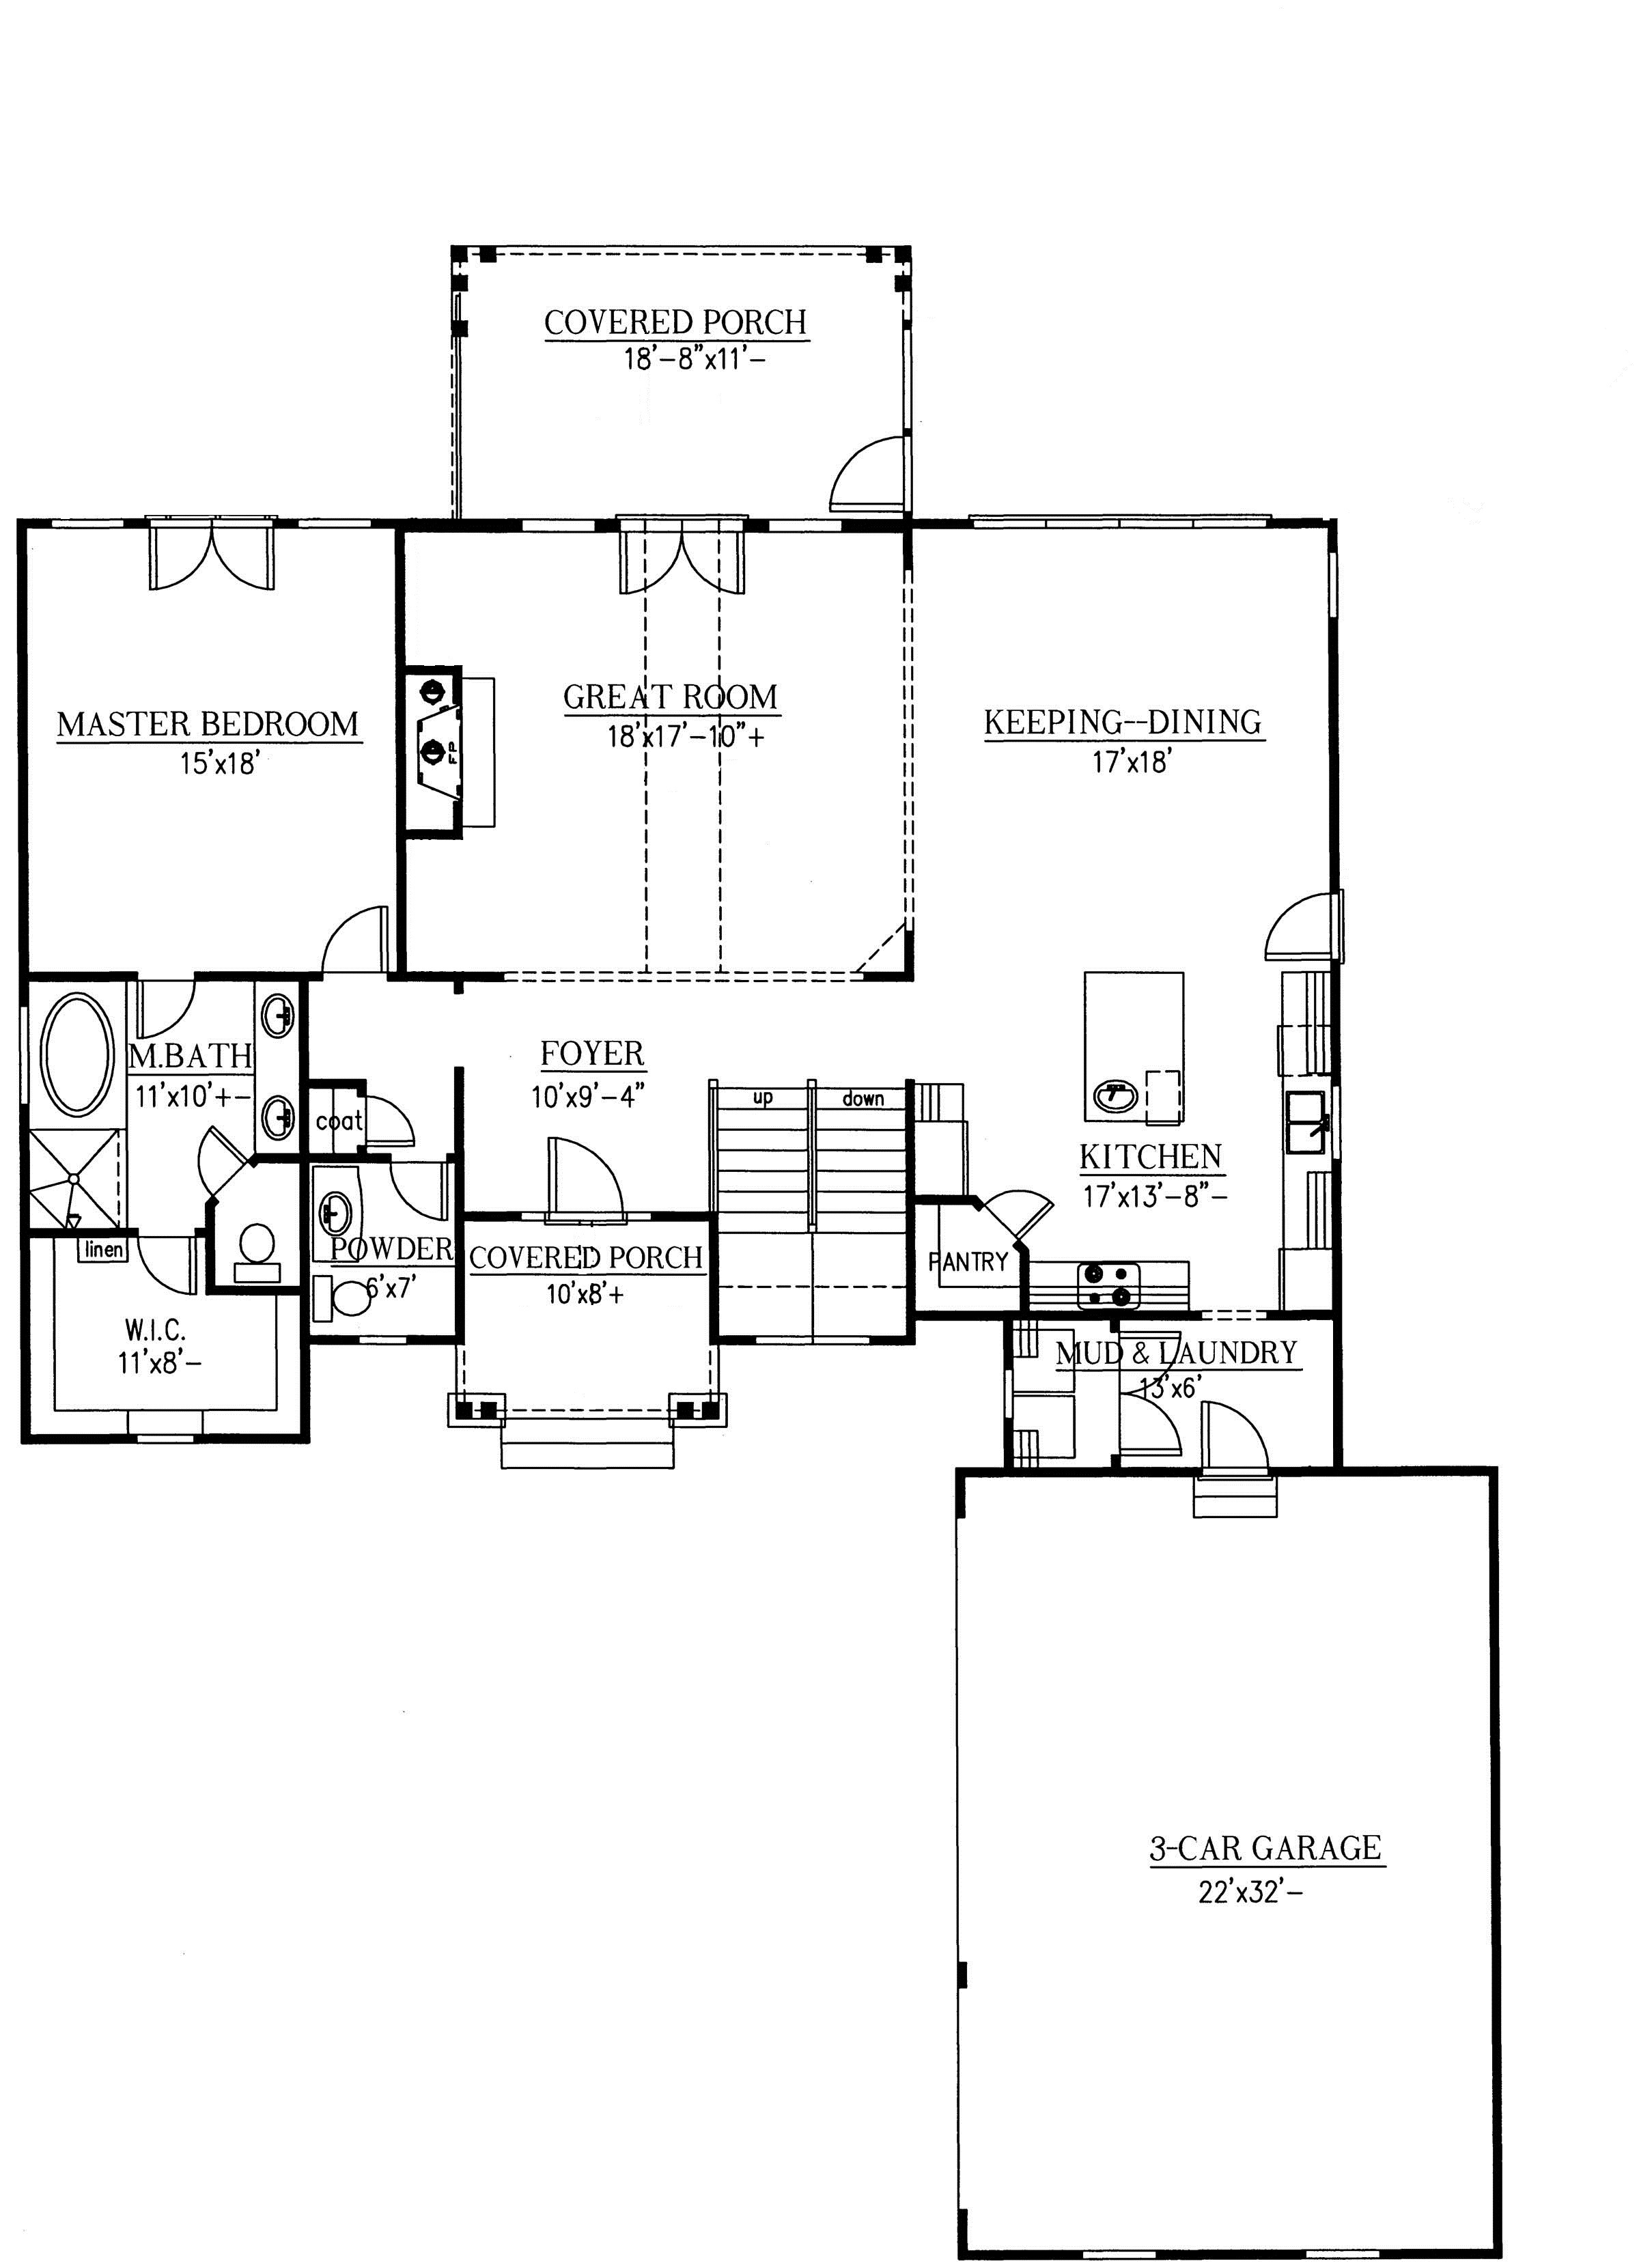 Great room with loft first floor plan sdl custom homes for Great room floor plans single story